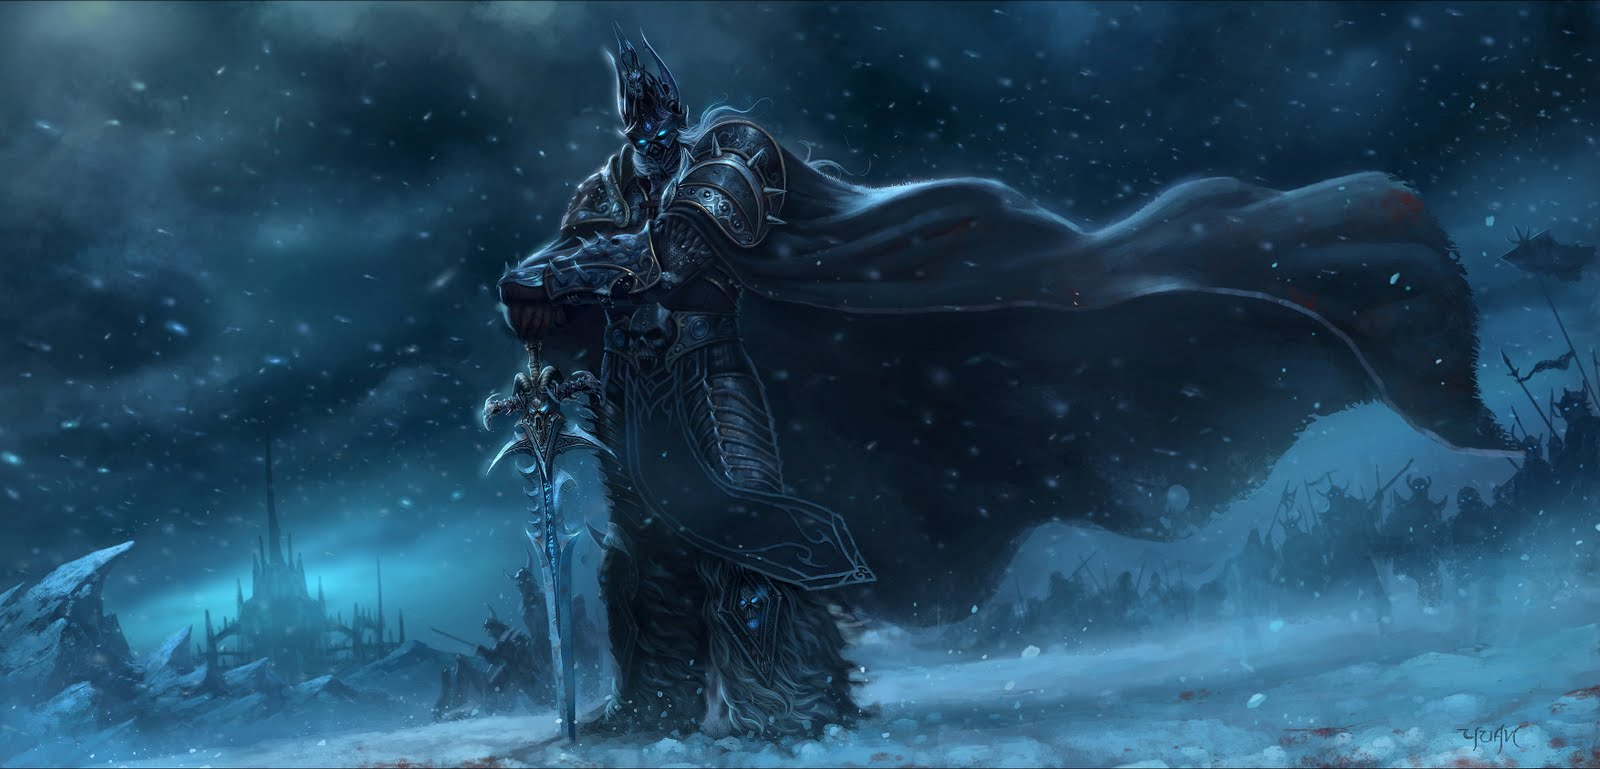 http://1.bp.blogspot.com/-9shq6OQOWZk/TtUKCKElU5I/AAAAAAAAAlc/xuo2f_cznr4/s1600/Arthas-Menethil-the-Lich-King-by-Chaoyuan-Xu-Wallpaper-Craft.jpg